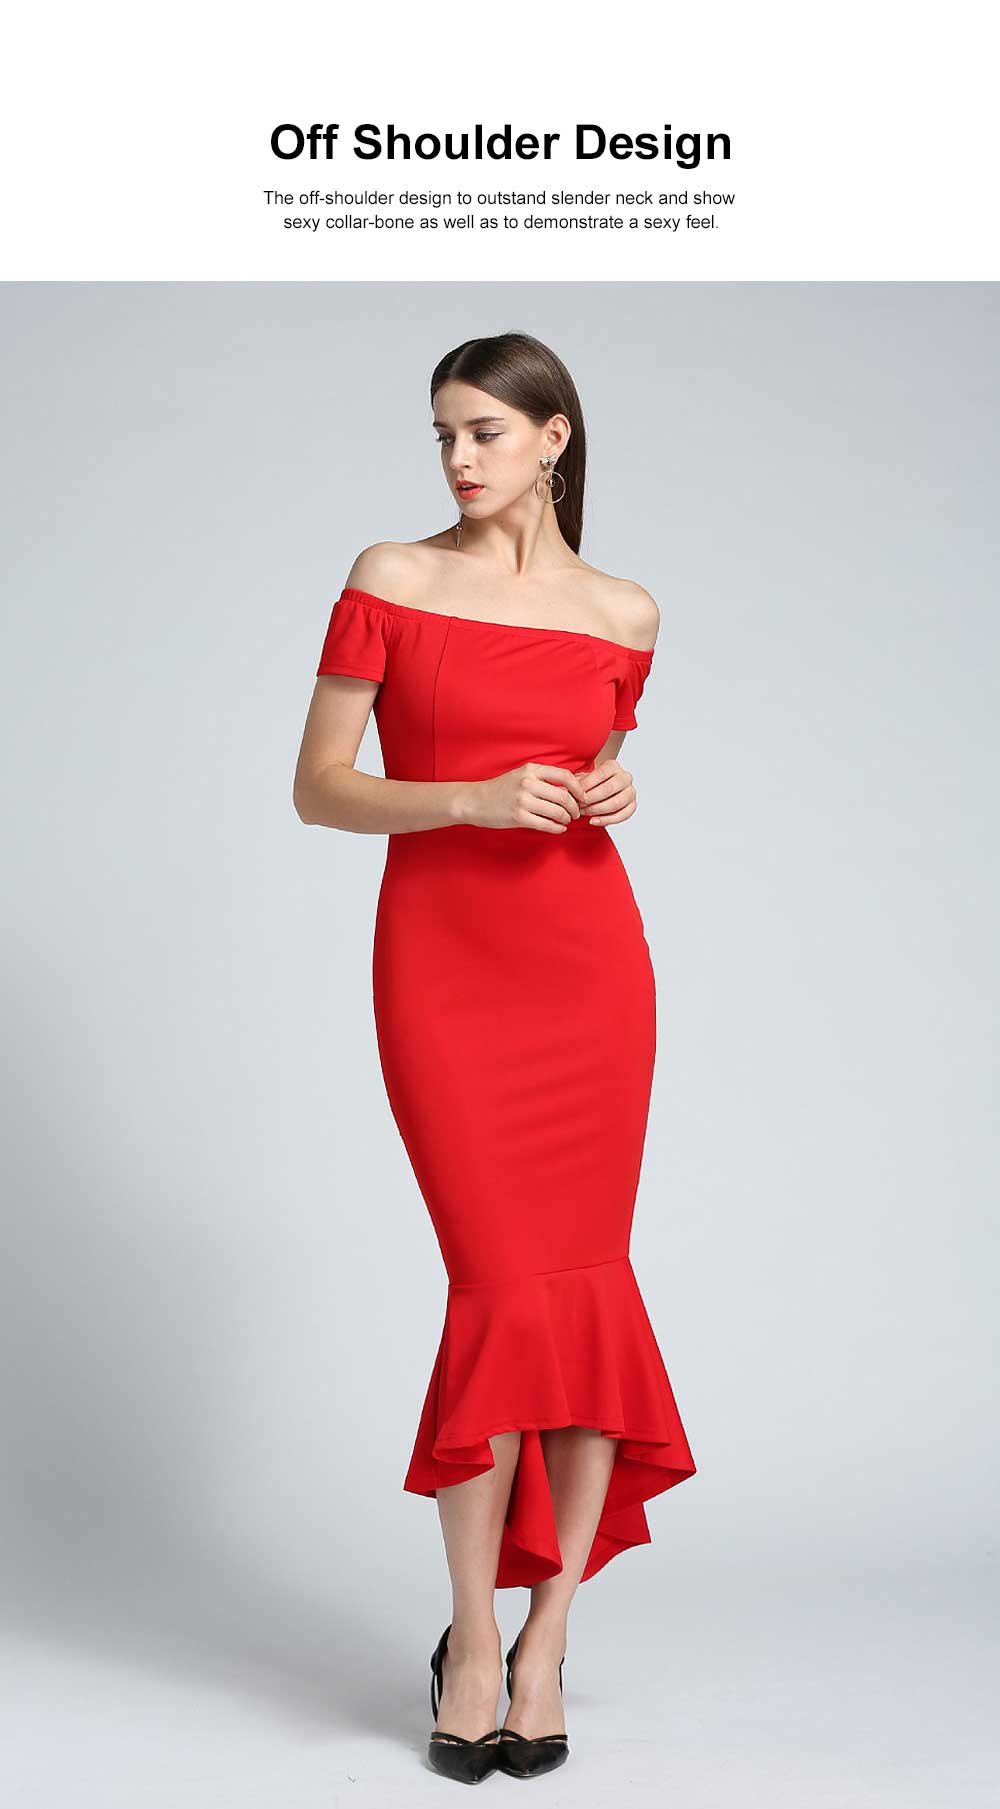 New Style One-piece Dress for Party Western Style Evening Formal Dress Amazon Best-selling Off Shoulder Short Sleeve Fishtail Skirt Evening Dress 2